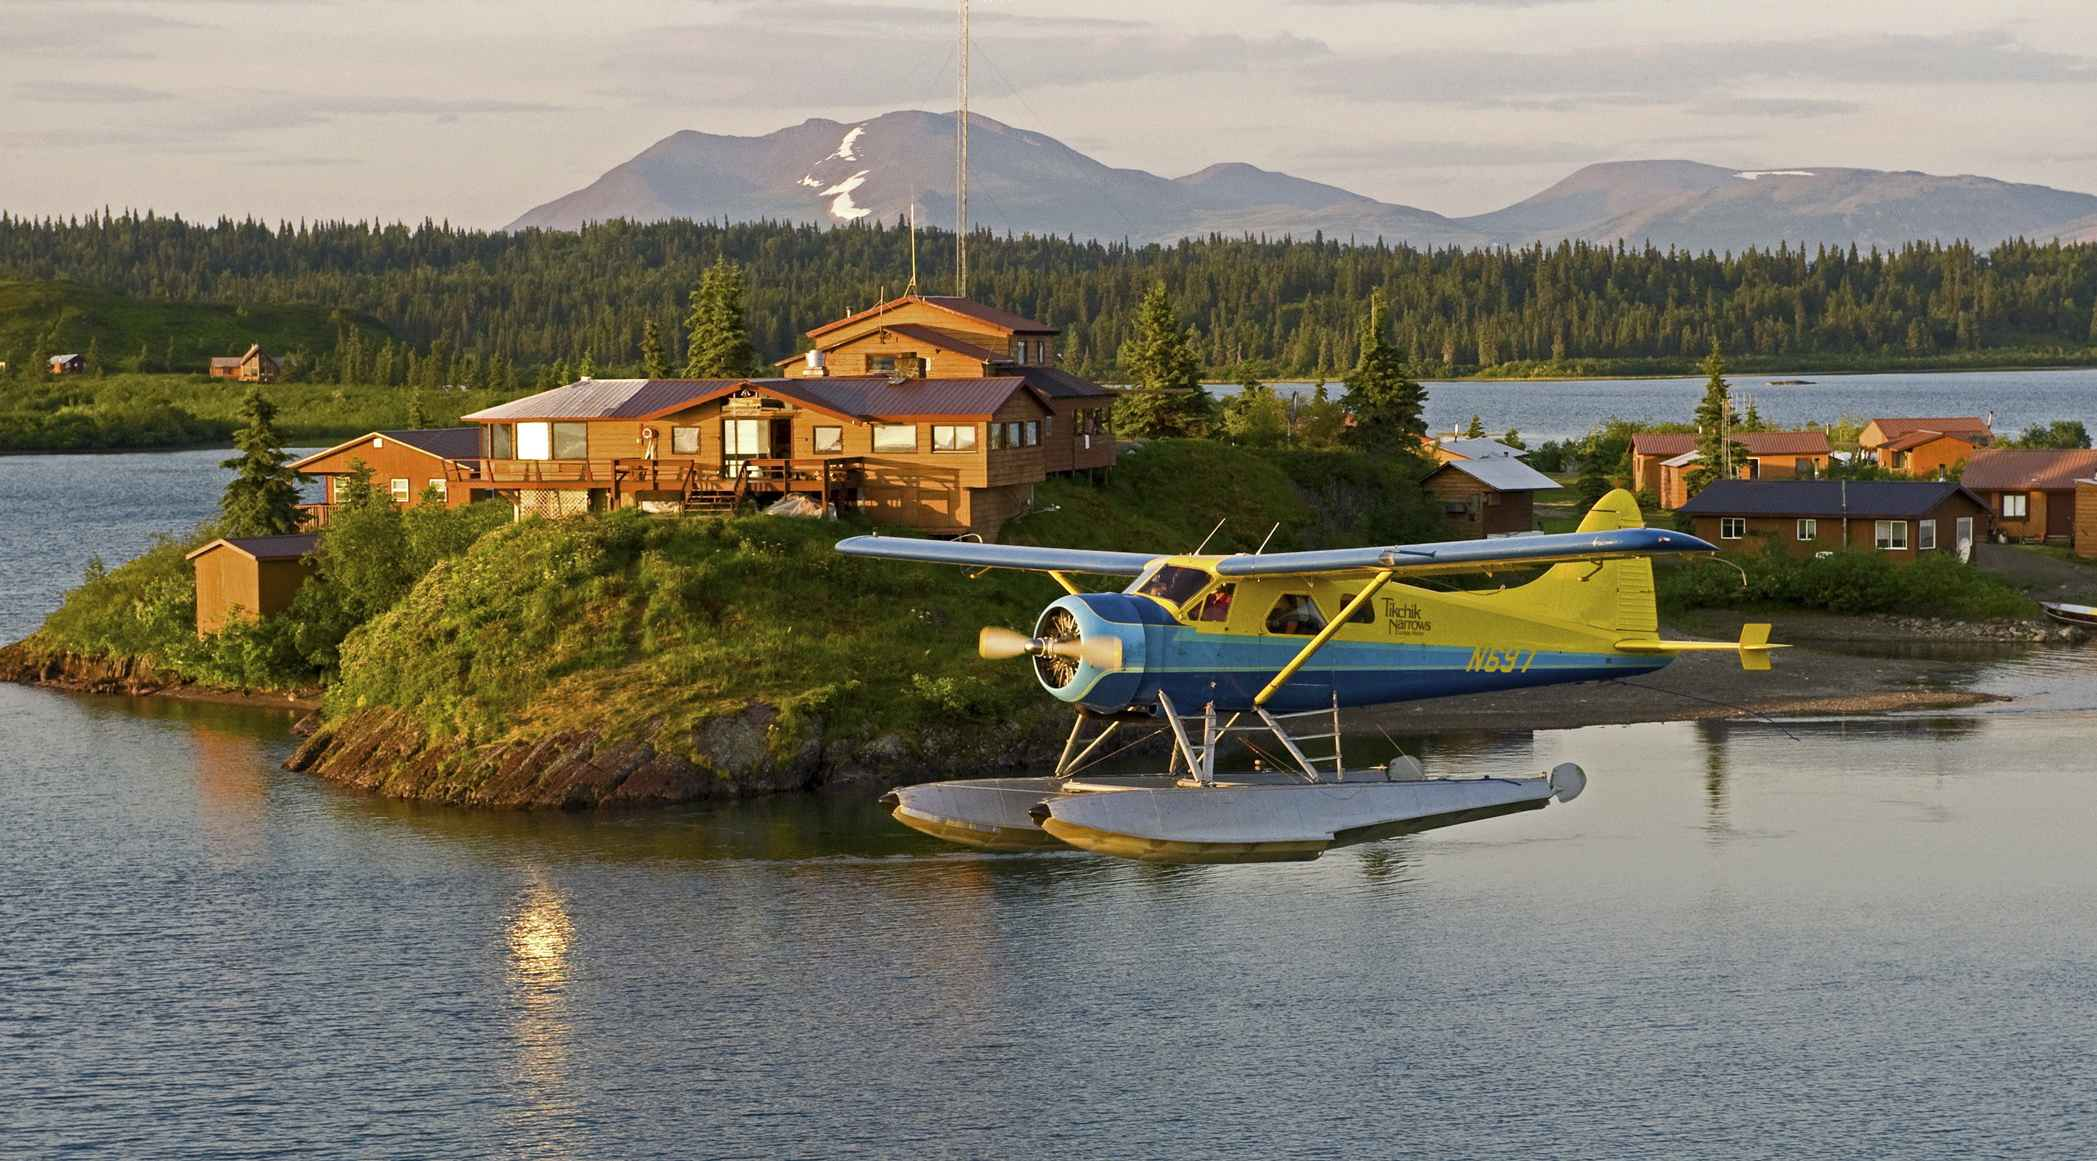 Alaska Fishing Lodge - FrizeMedia